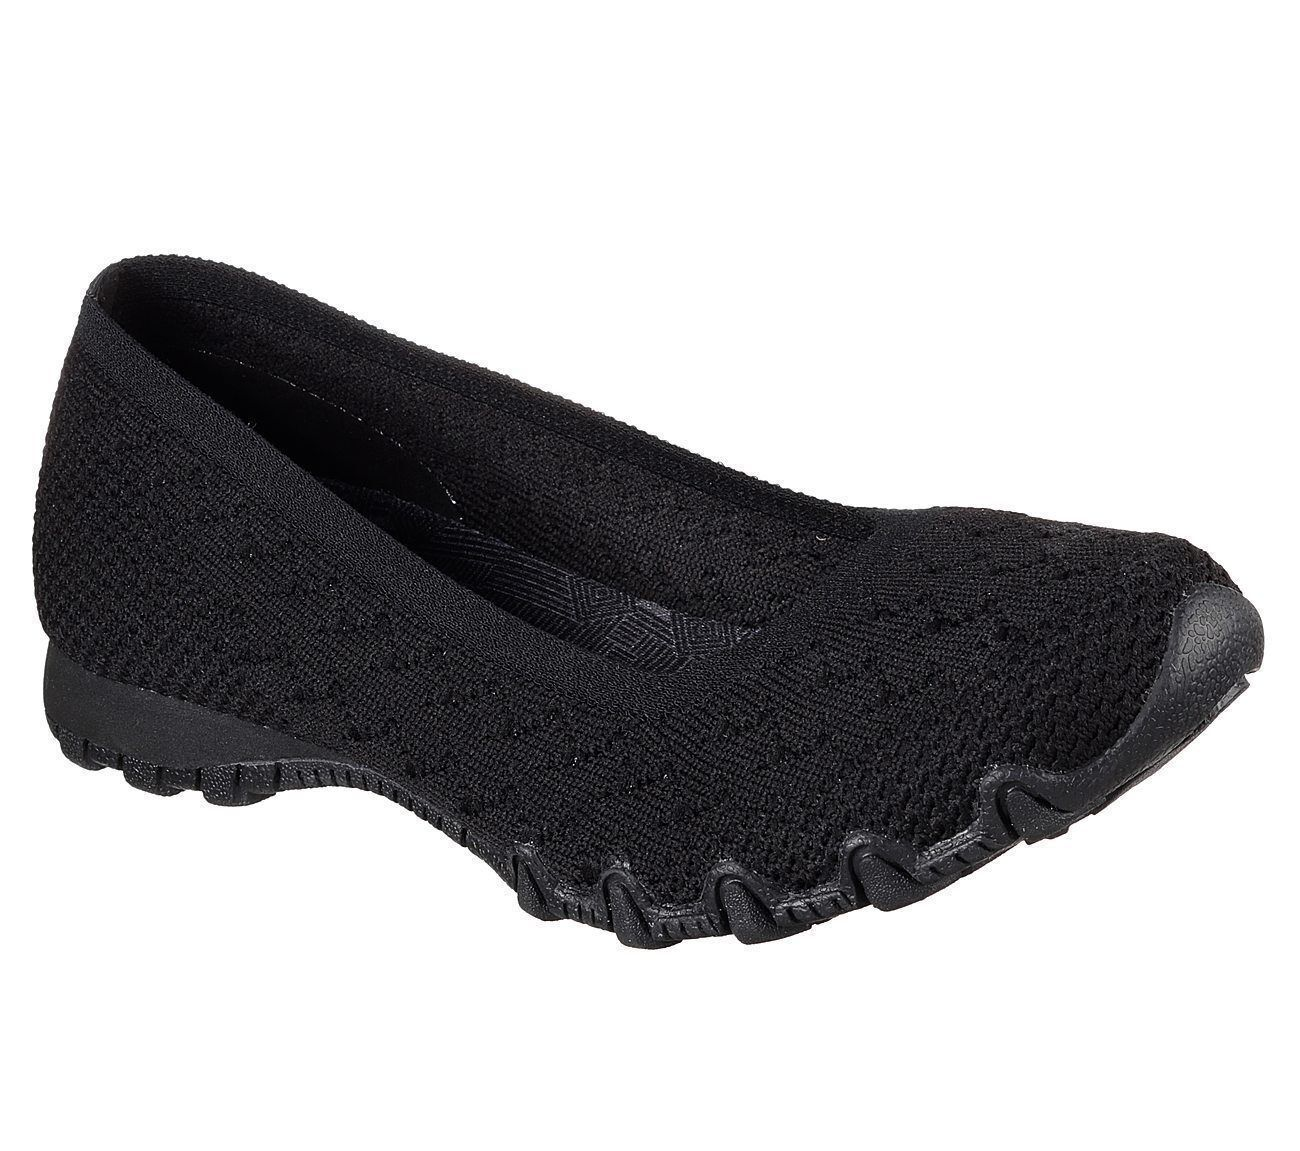 New Skechers 49453 49453 49453 BLK Relaxed Fit Black Women's Casual shoes cb64b0